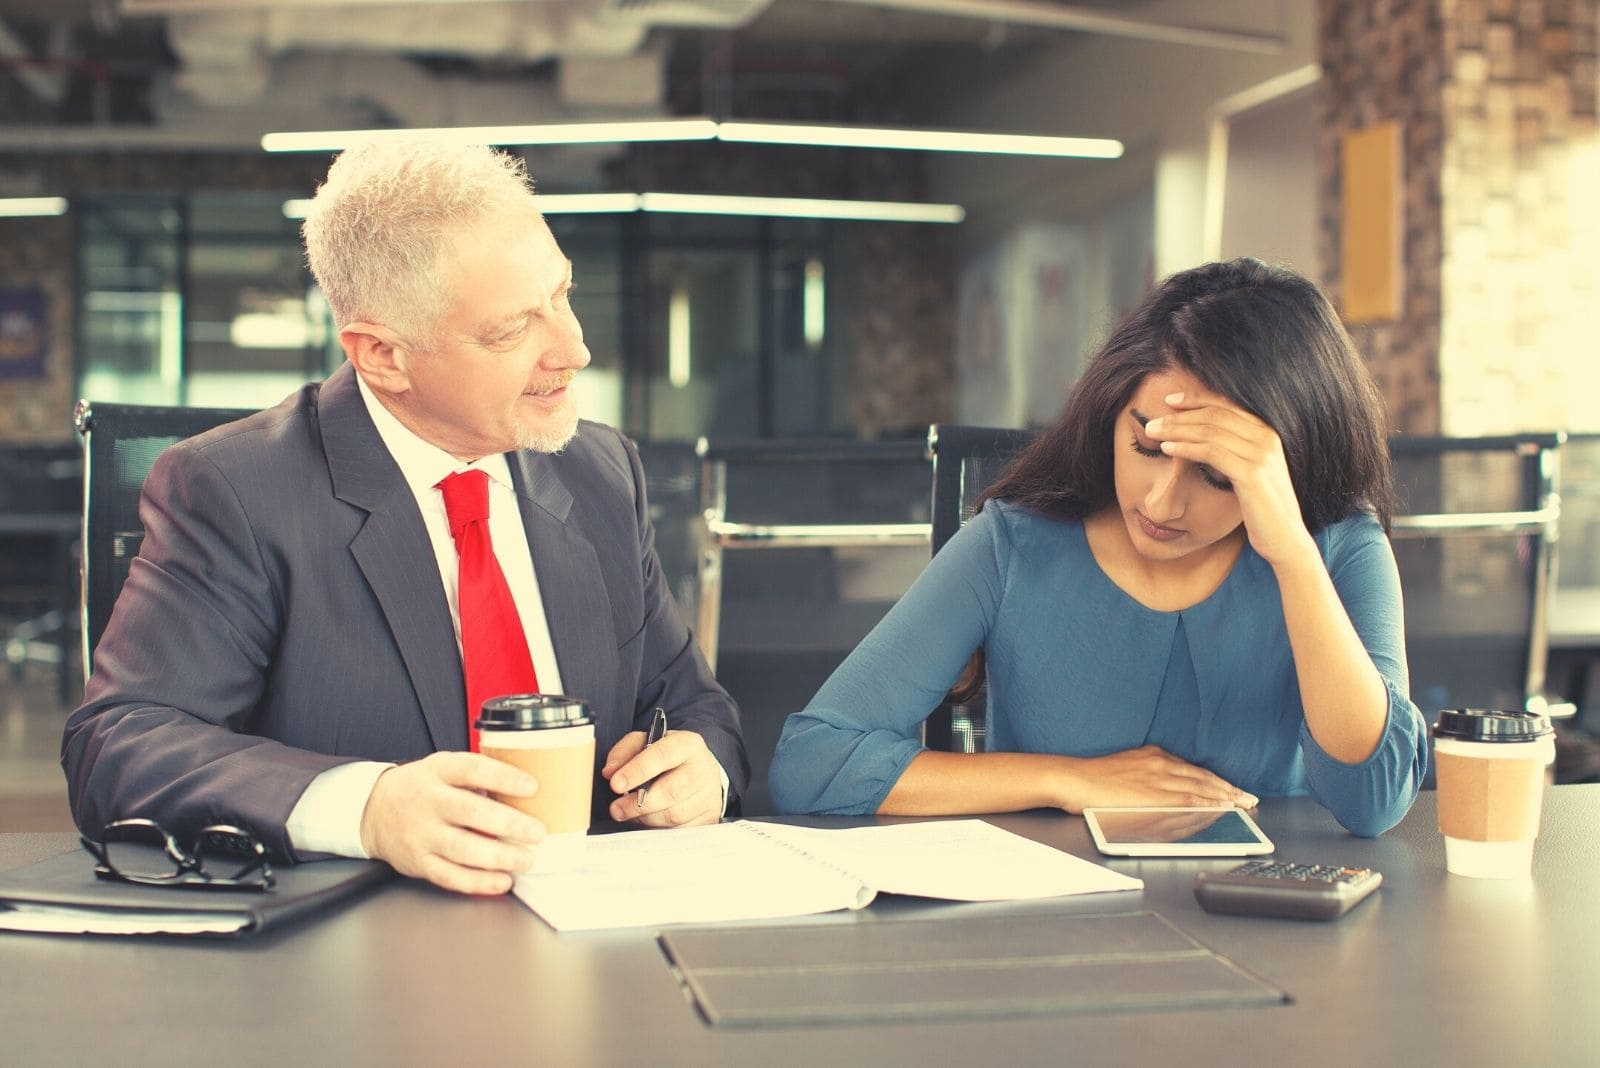 displeased leader blaming young businesswoman while having coffee and sitting by the table